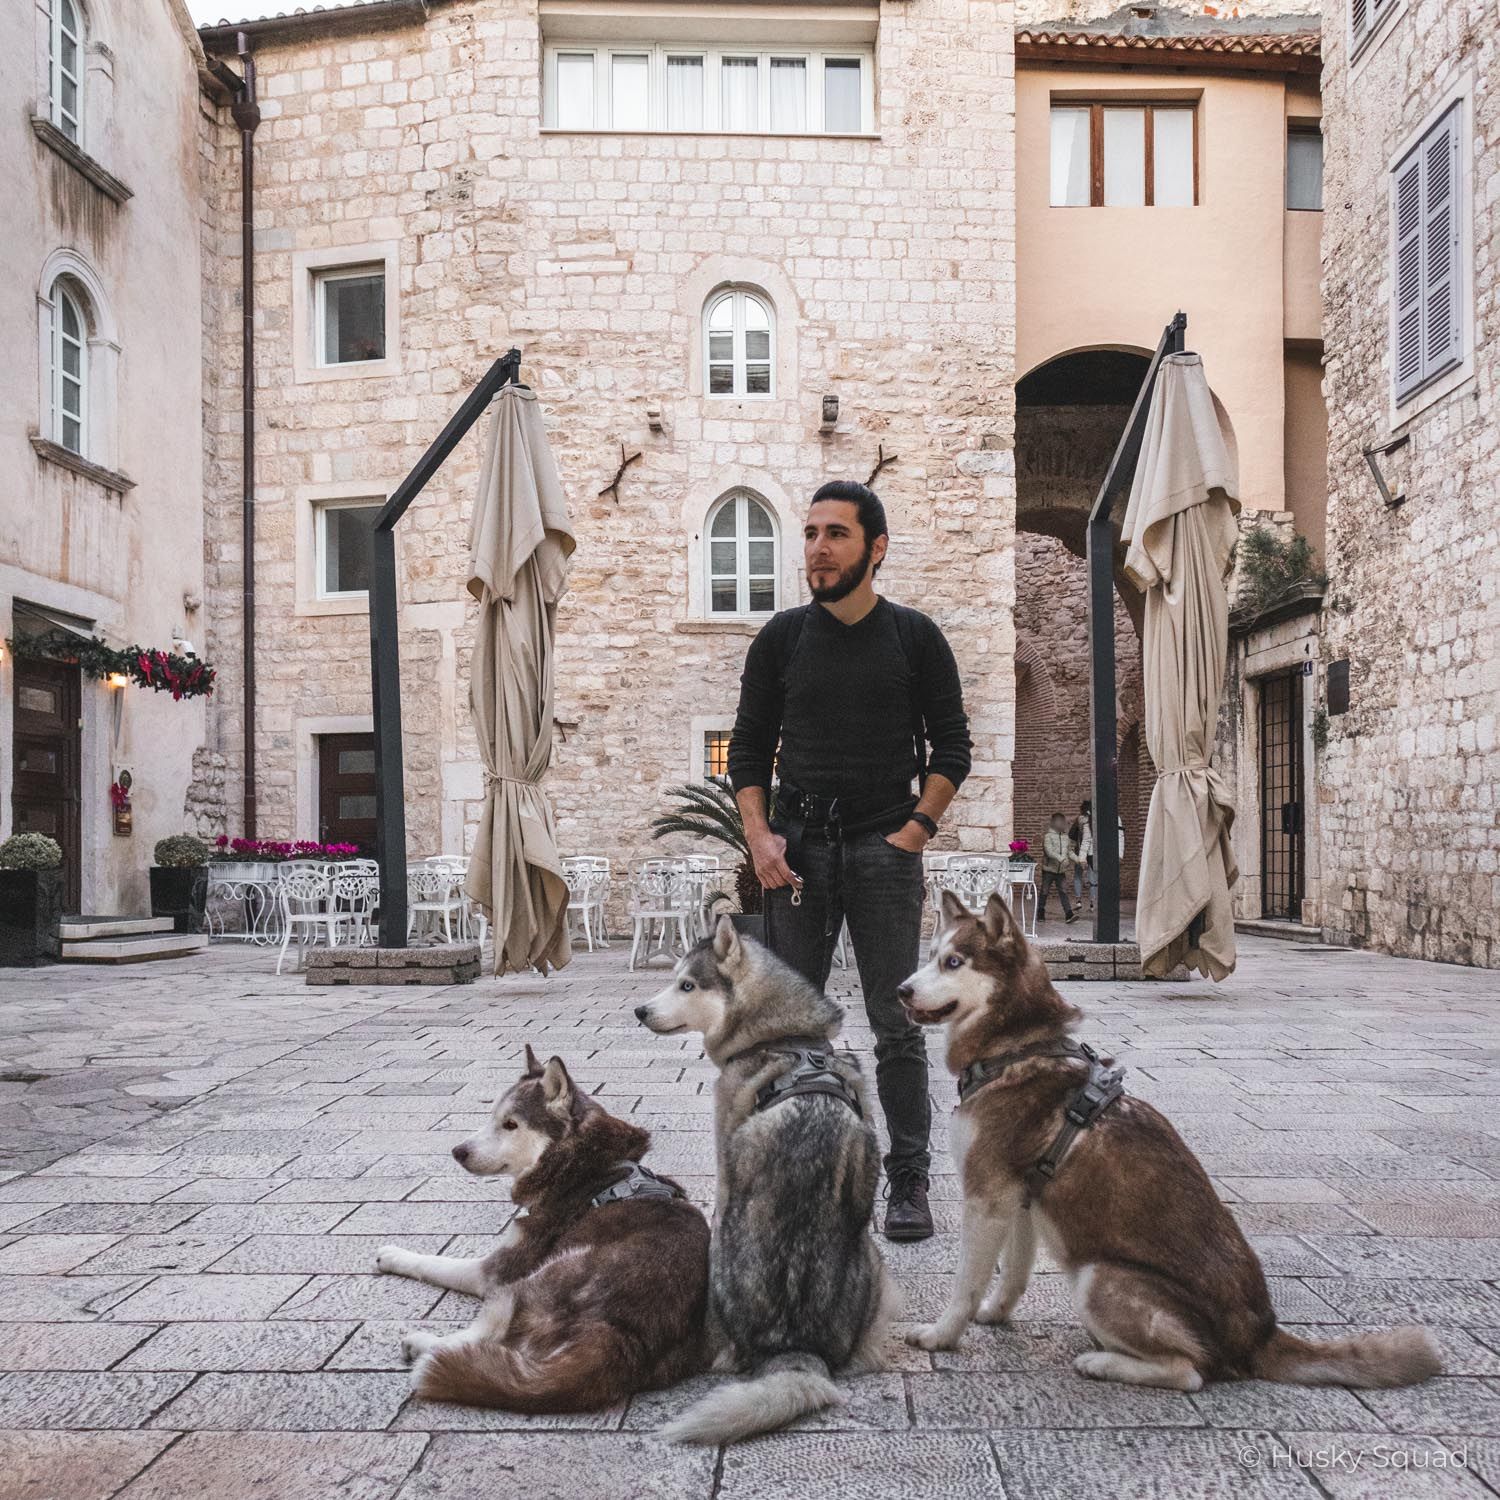 Jc with Husky Squad in Split